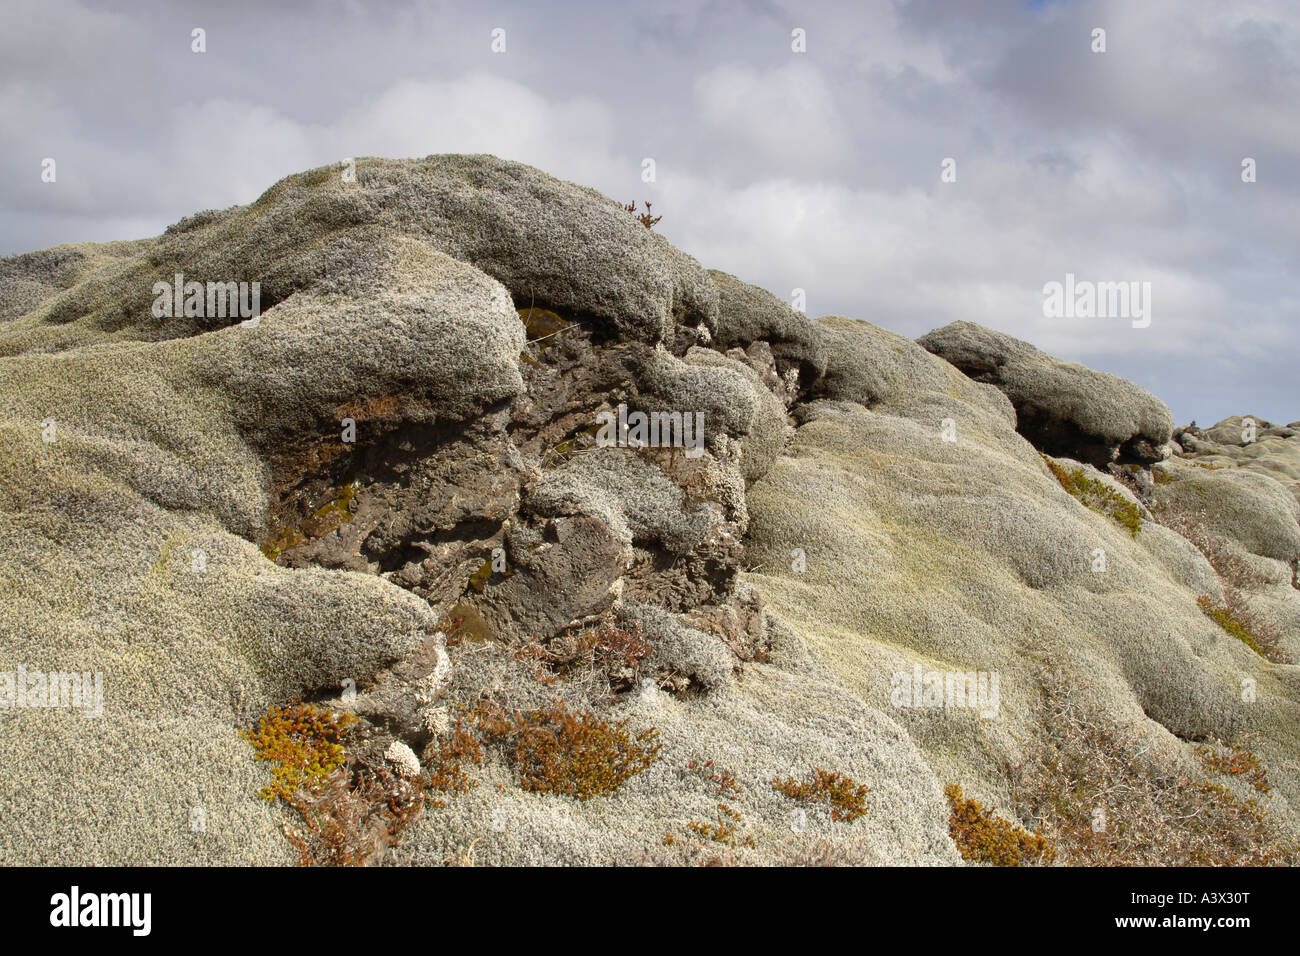 Pillow lava formations covered in mosses and other plants Land brot south east Iceland Stock Photo